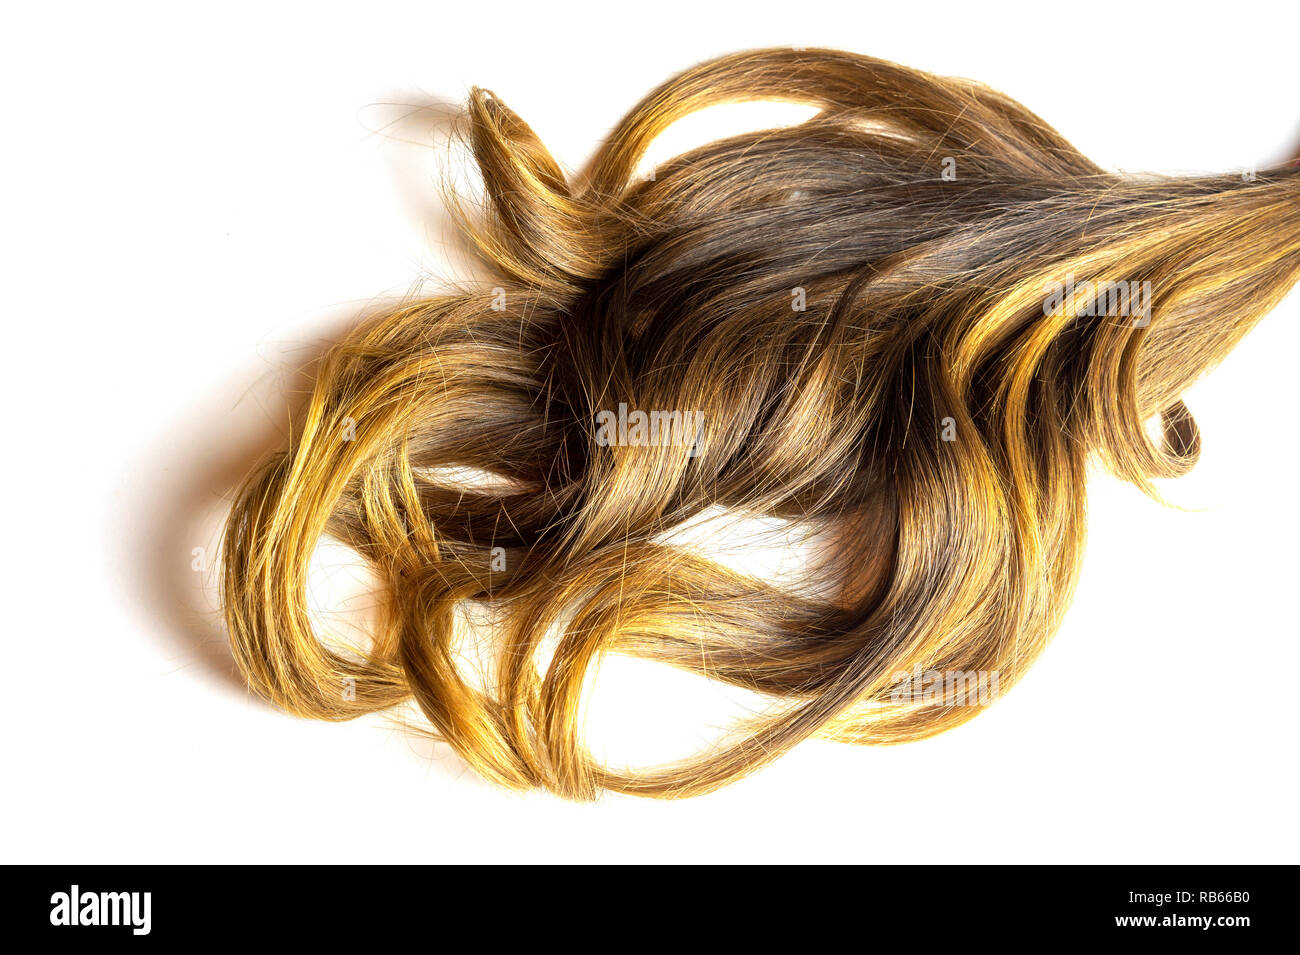 piece of brown curly shiny hair on white isolated background - Stock Image